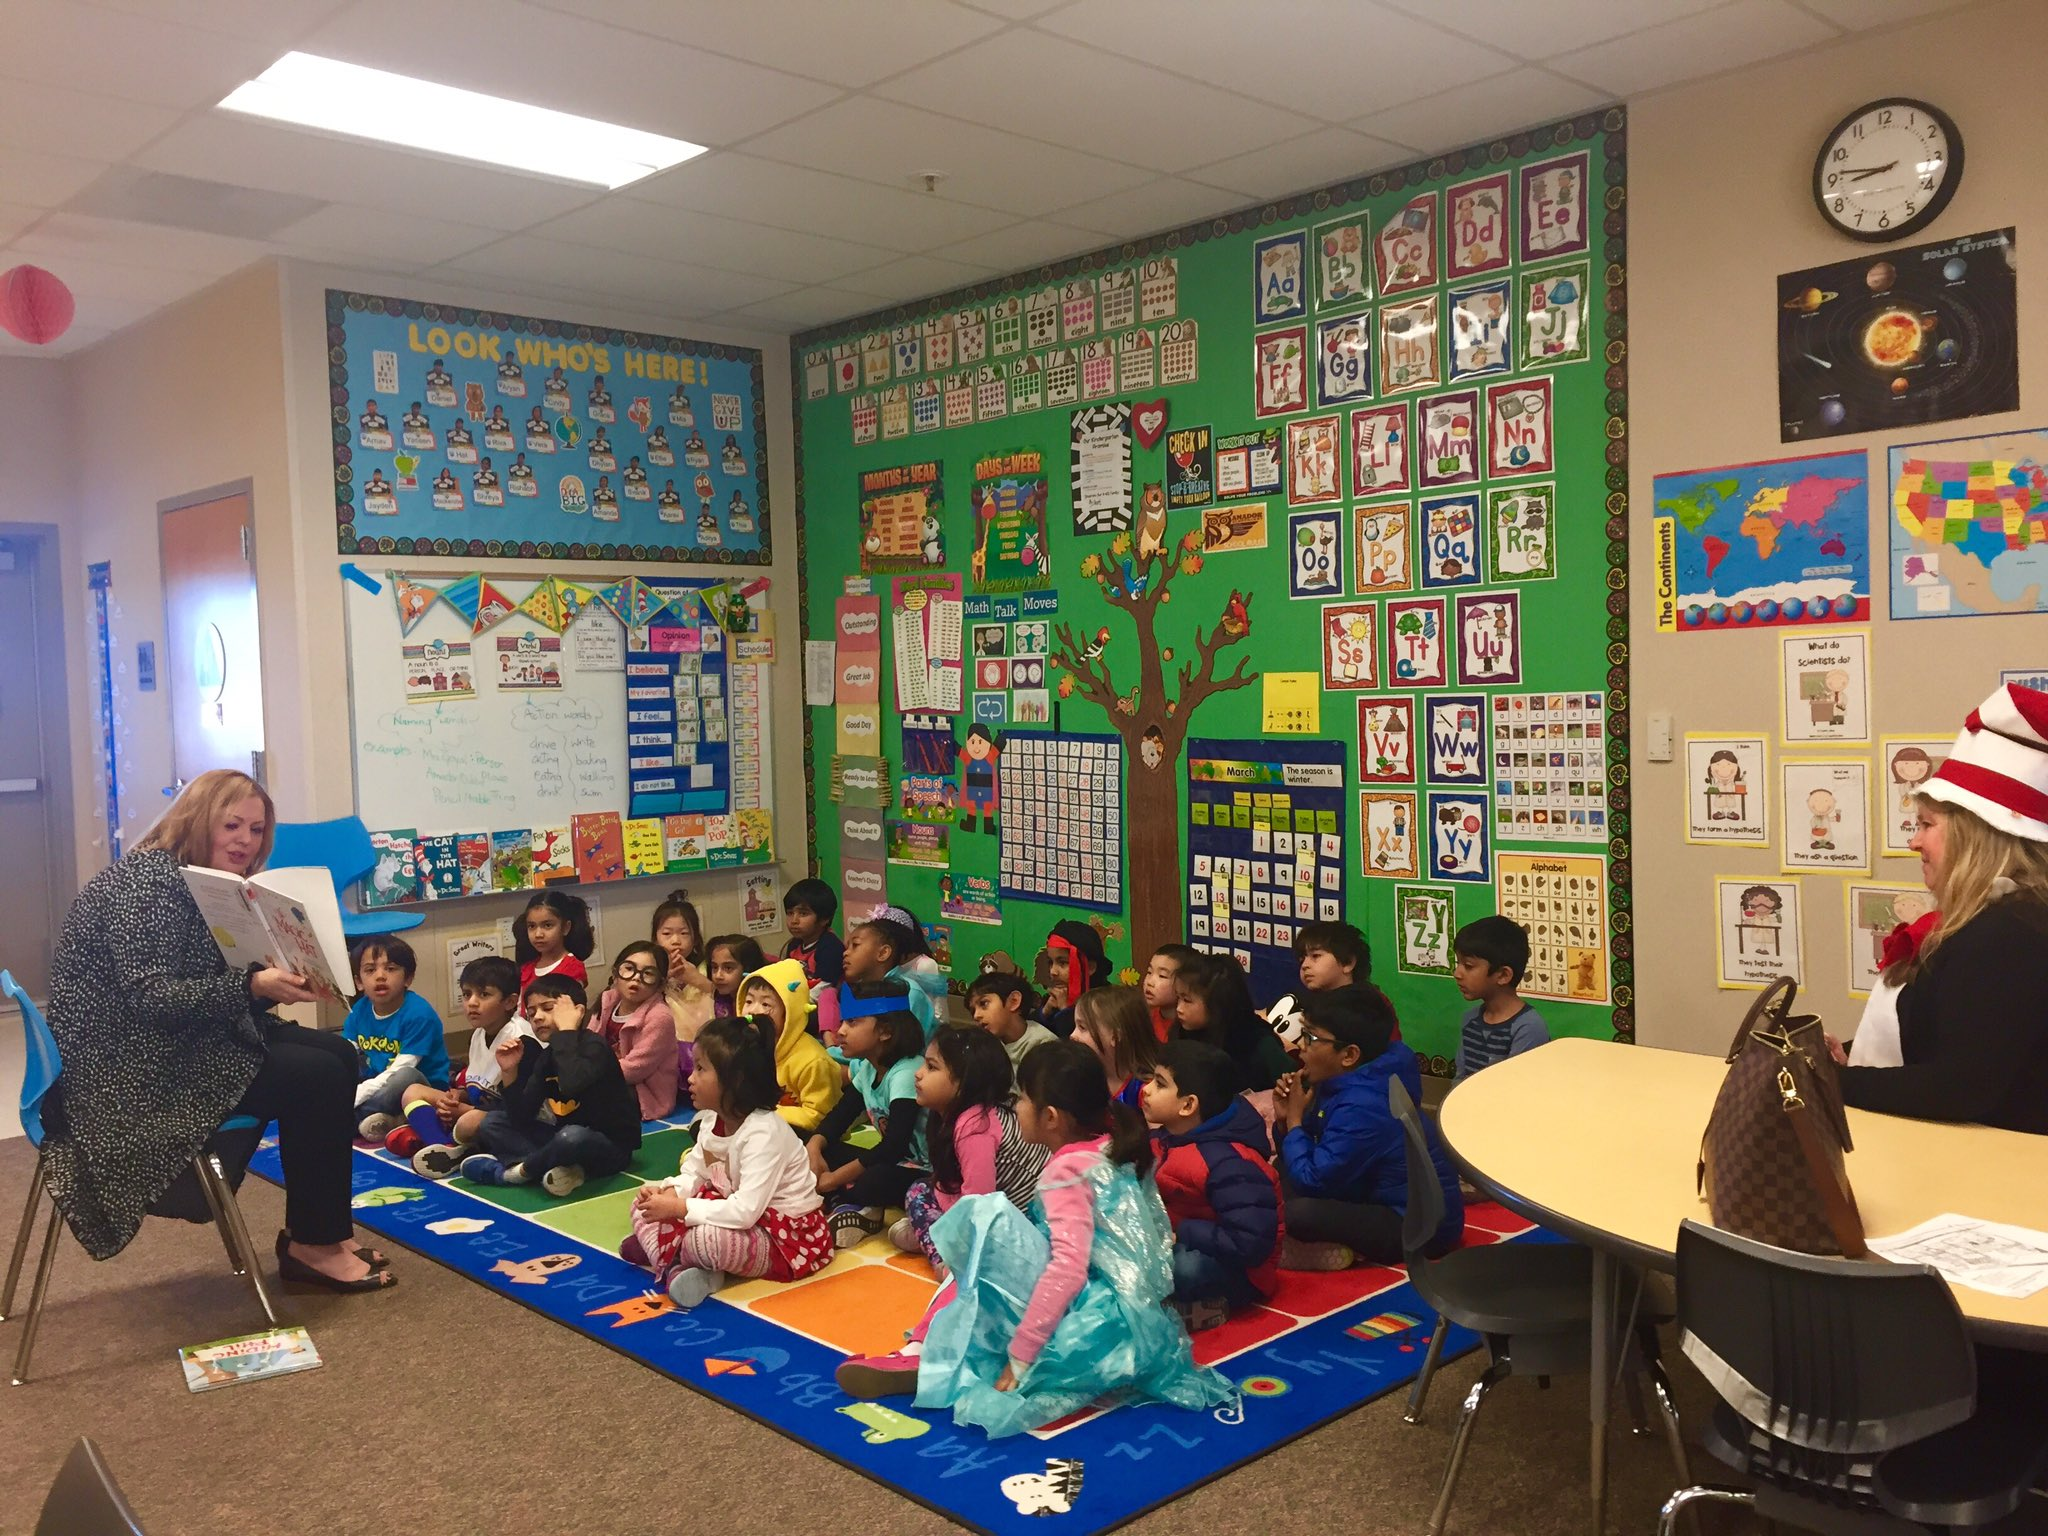 Thank you Dr. Boozer for being our special reader😊#K102 is super lucky!! @DUSDSupt @hollyscrogginsr @AESowls @DUSD4kids https://t.co/y1jvRuT7eA